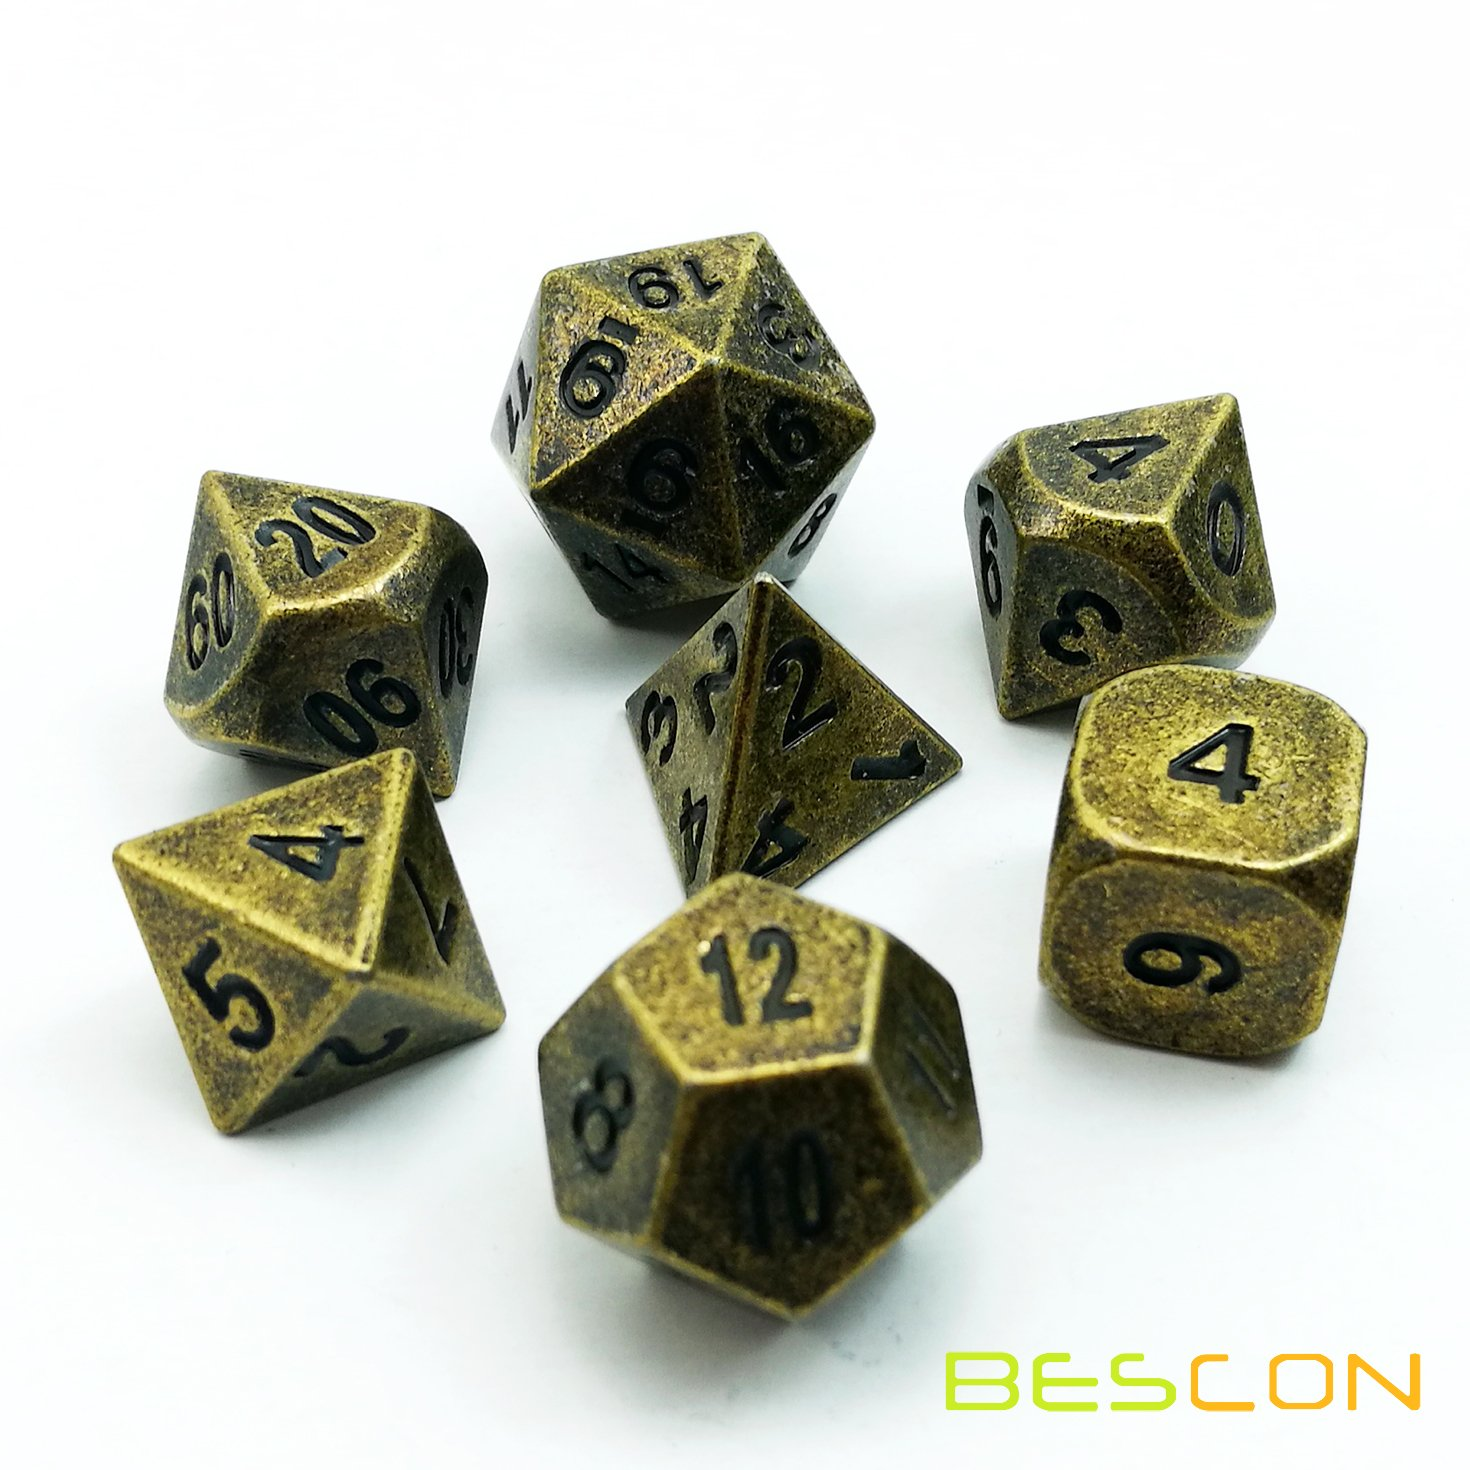 BESCON DICE Bescon Ancient Brass Solid Metal Polyhedral D&D Dice Set of 7 Antique Copper Metal RPG Role Playing Game Dice 7pcs Set